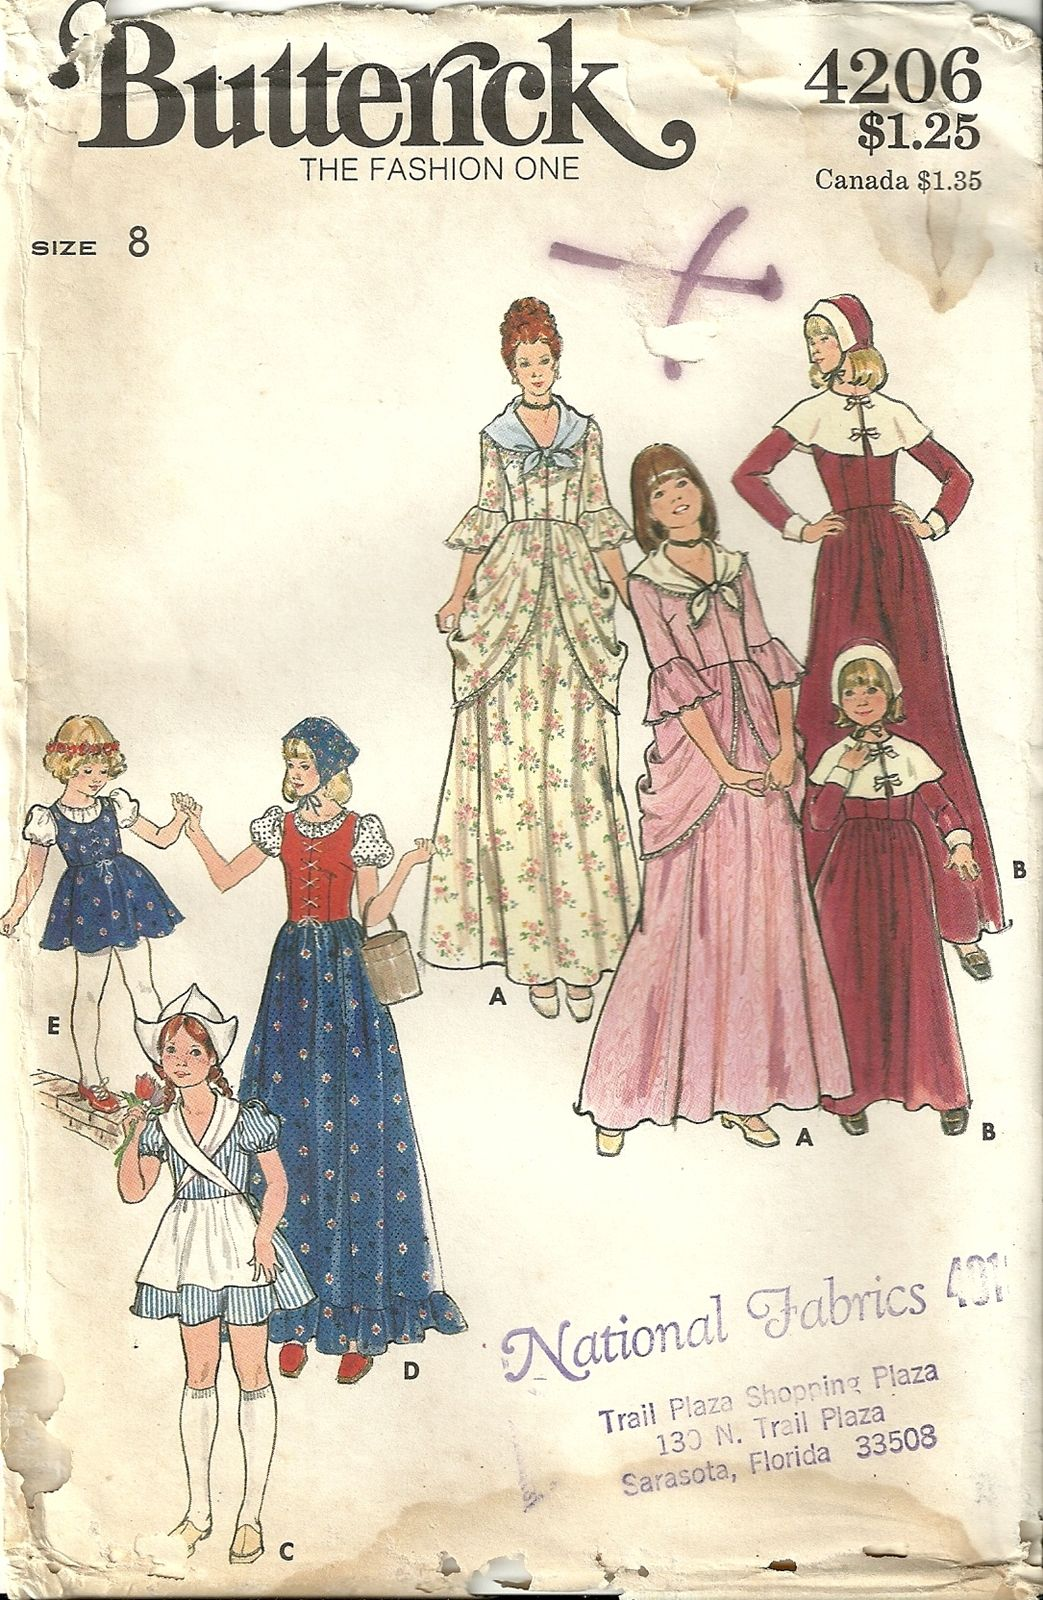 Butterick 4206 Girls Pioneer Colonial Dutch Gypsy Pilgrim Costume Sewing Pattern Size 8  sc 1 st  Pinterest & Butterick 4206 Girls Pioneer Colonial Dutch Gypsy Pilgrim Costume ...